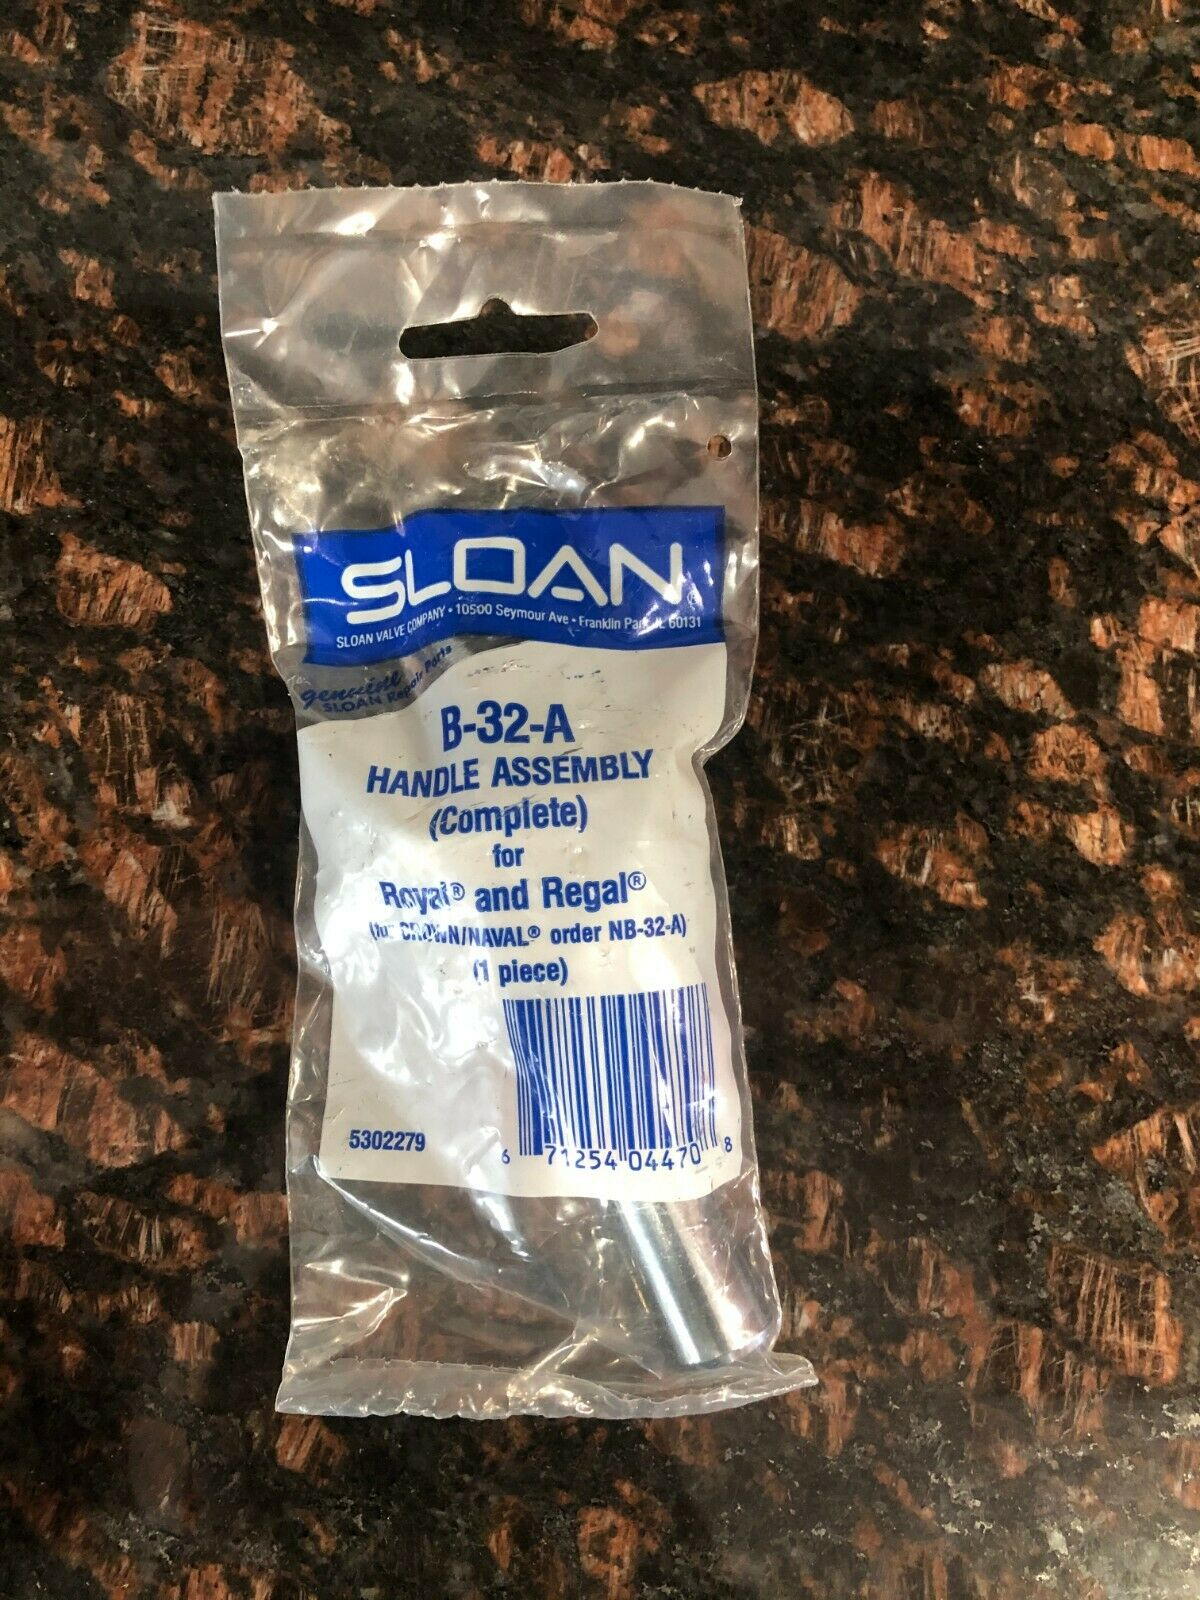 Sloan 5302279 Replacement Part